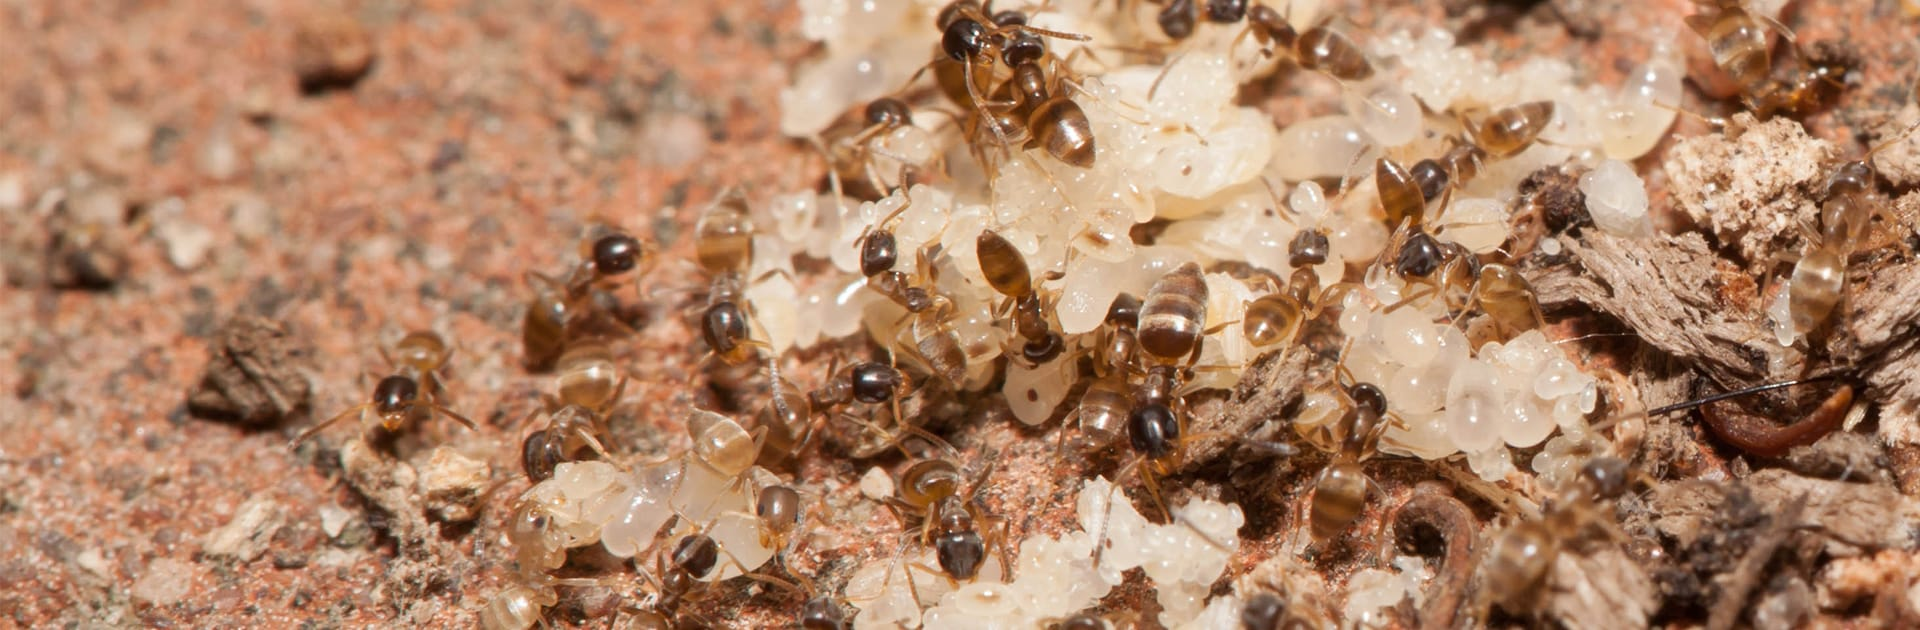 odorous house ants and eggs in yard